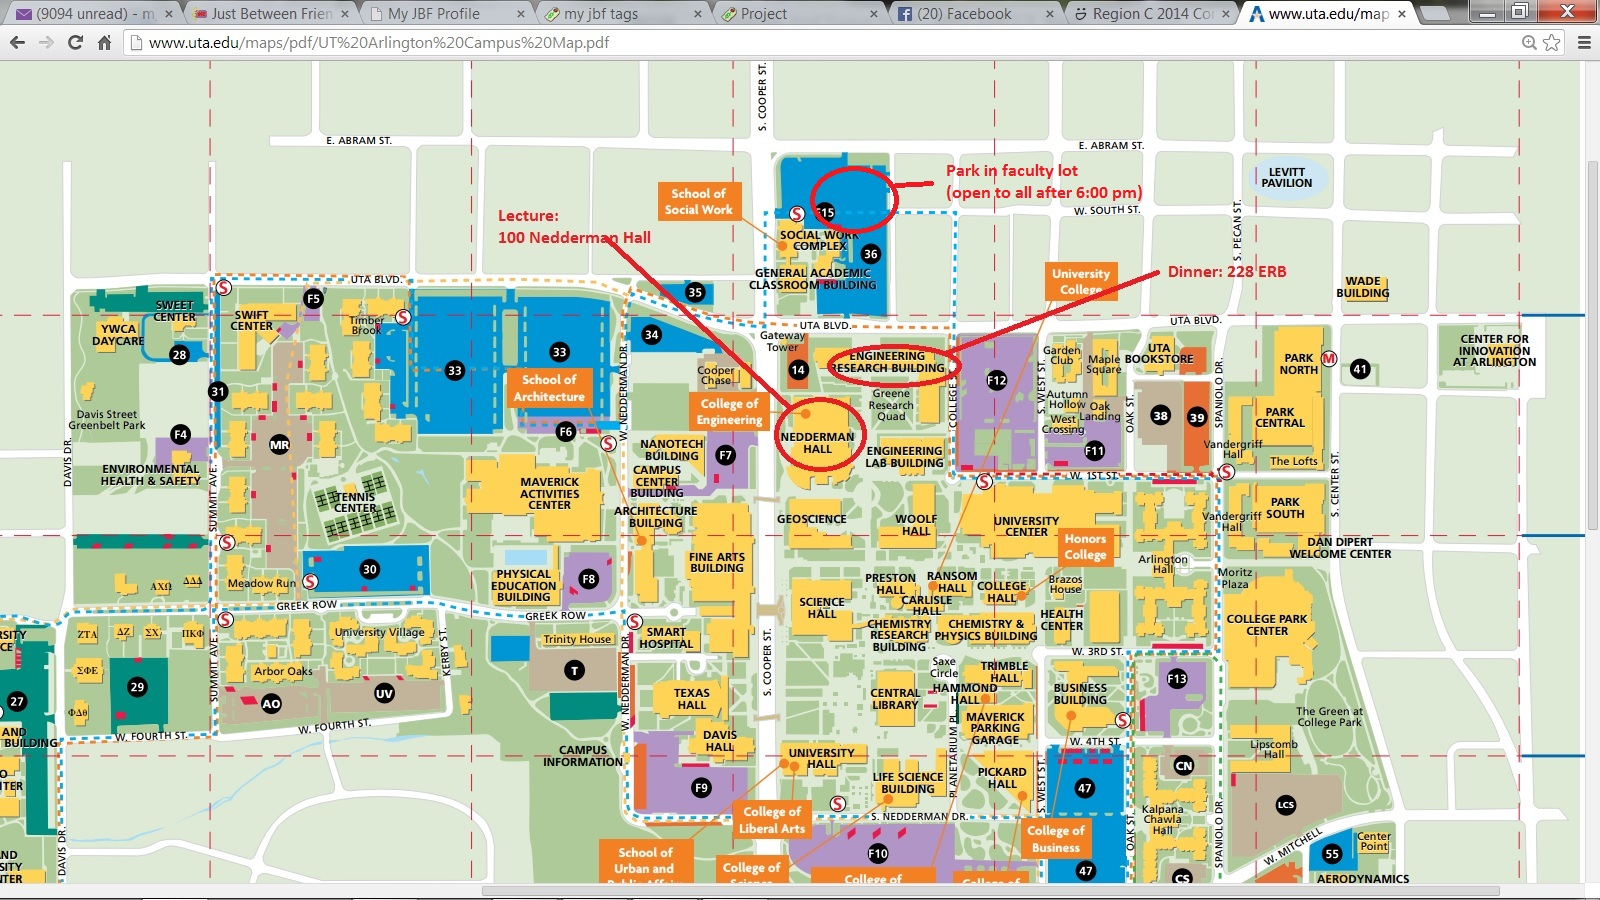 University Of Texas Arlington Map | Business Ideas 2013